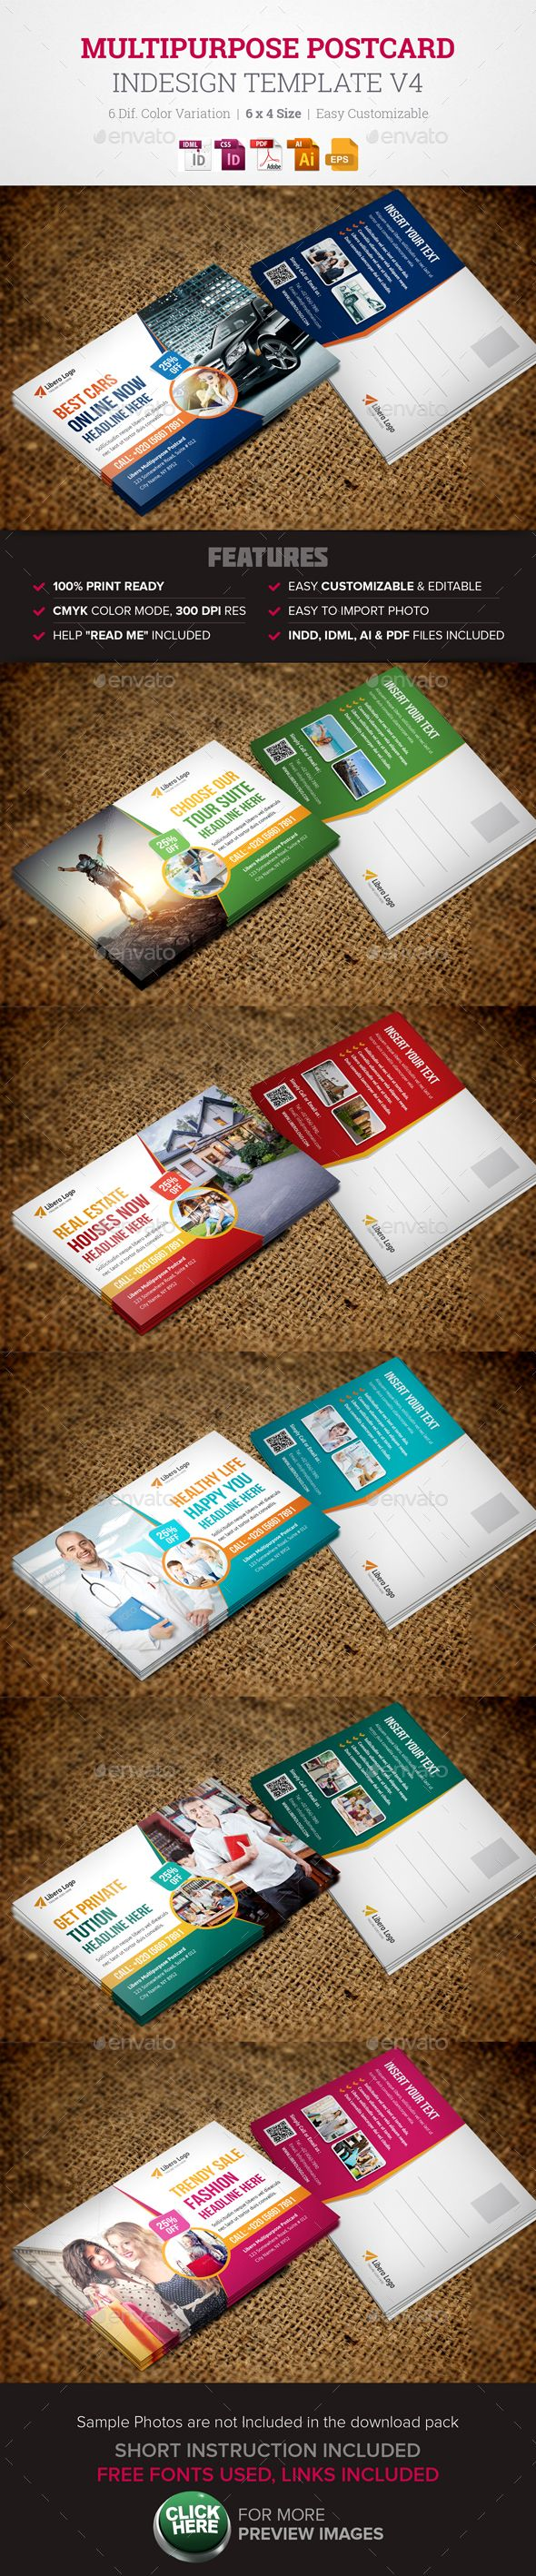 Postcard InDesign Template v4 - Cards & Invites Print Templates ...